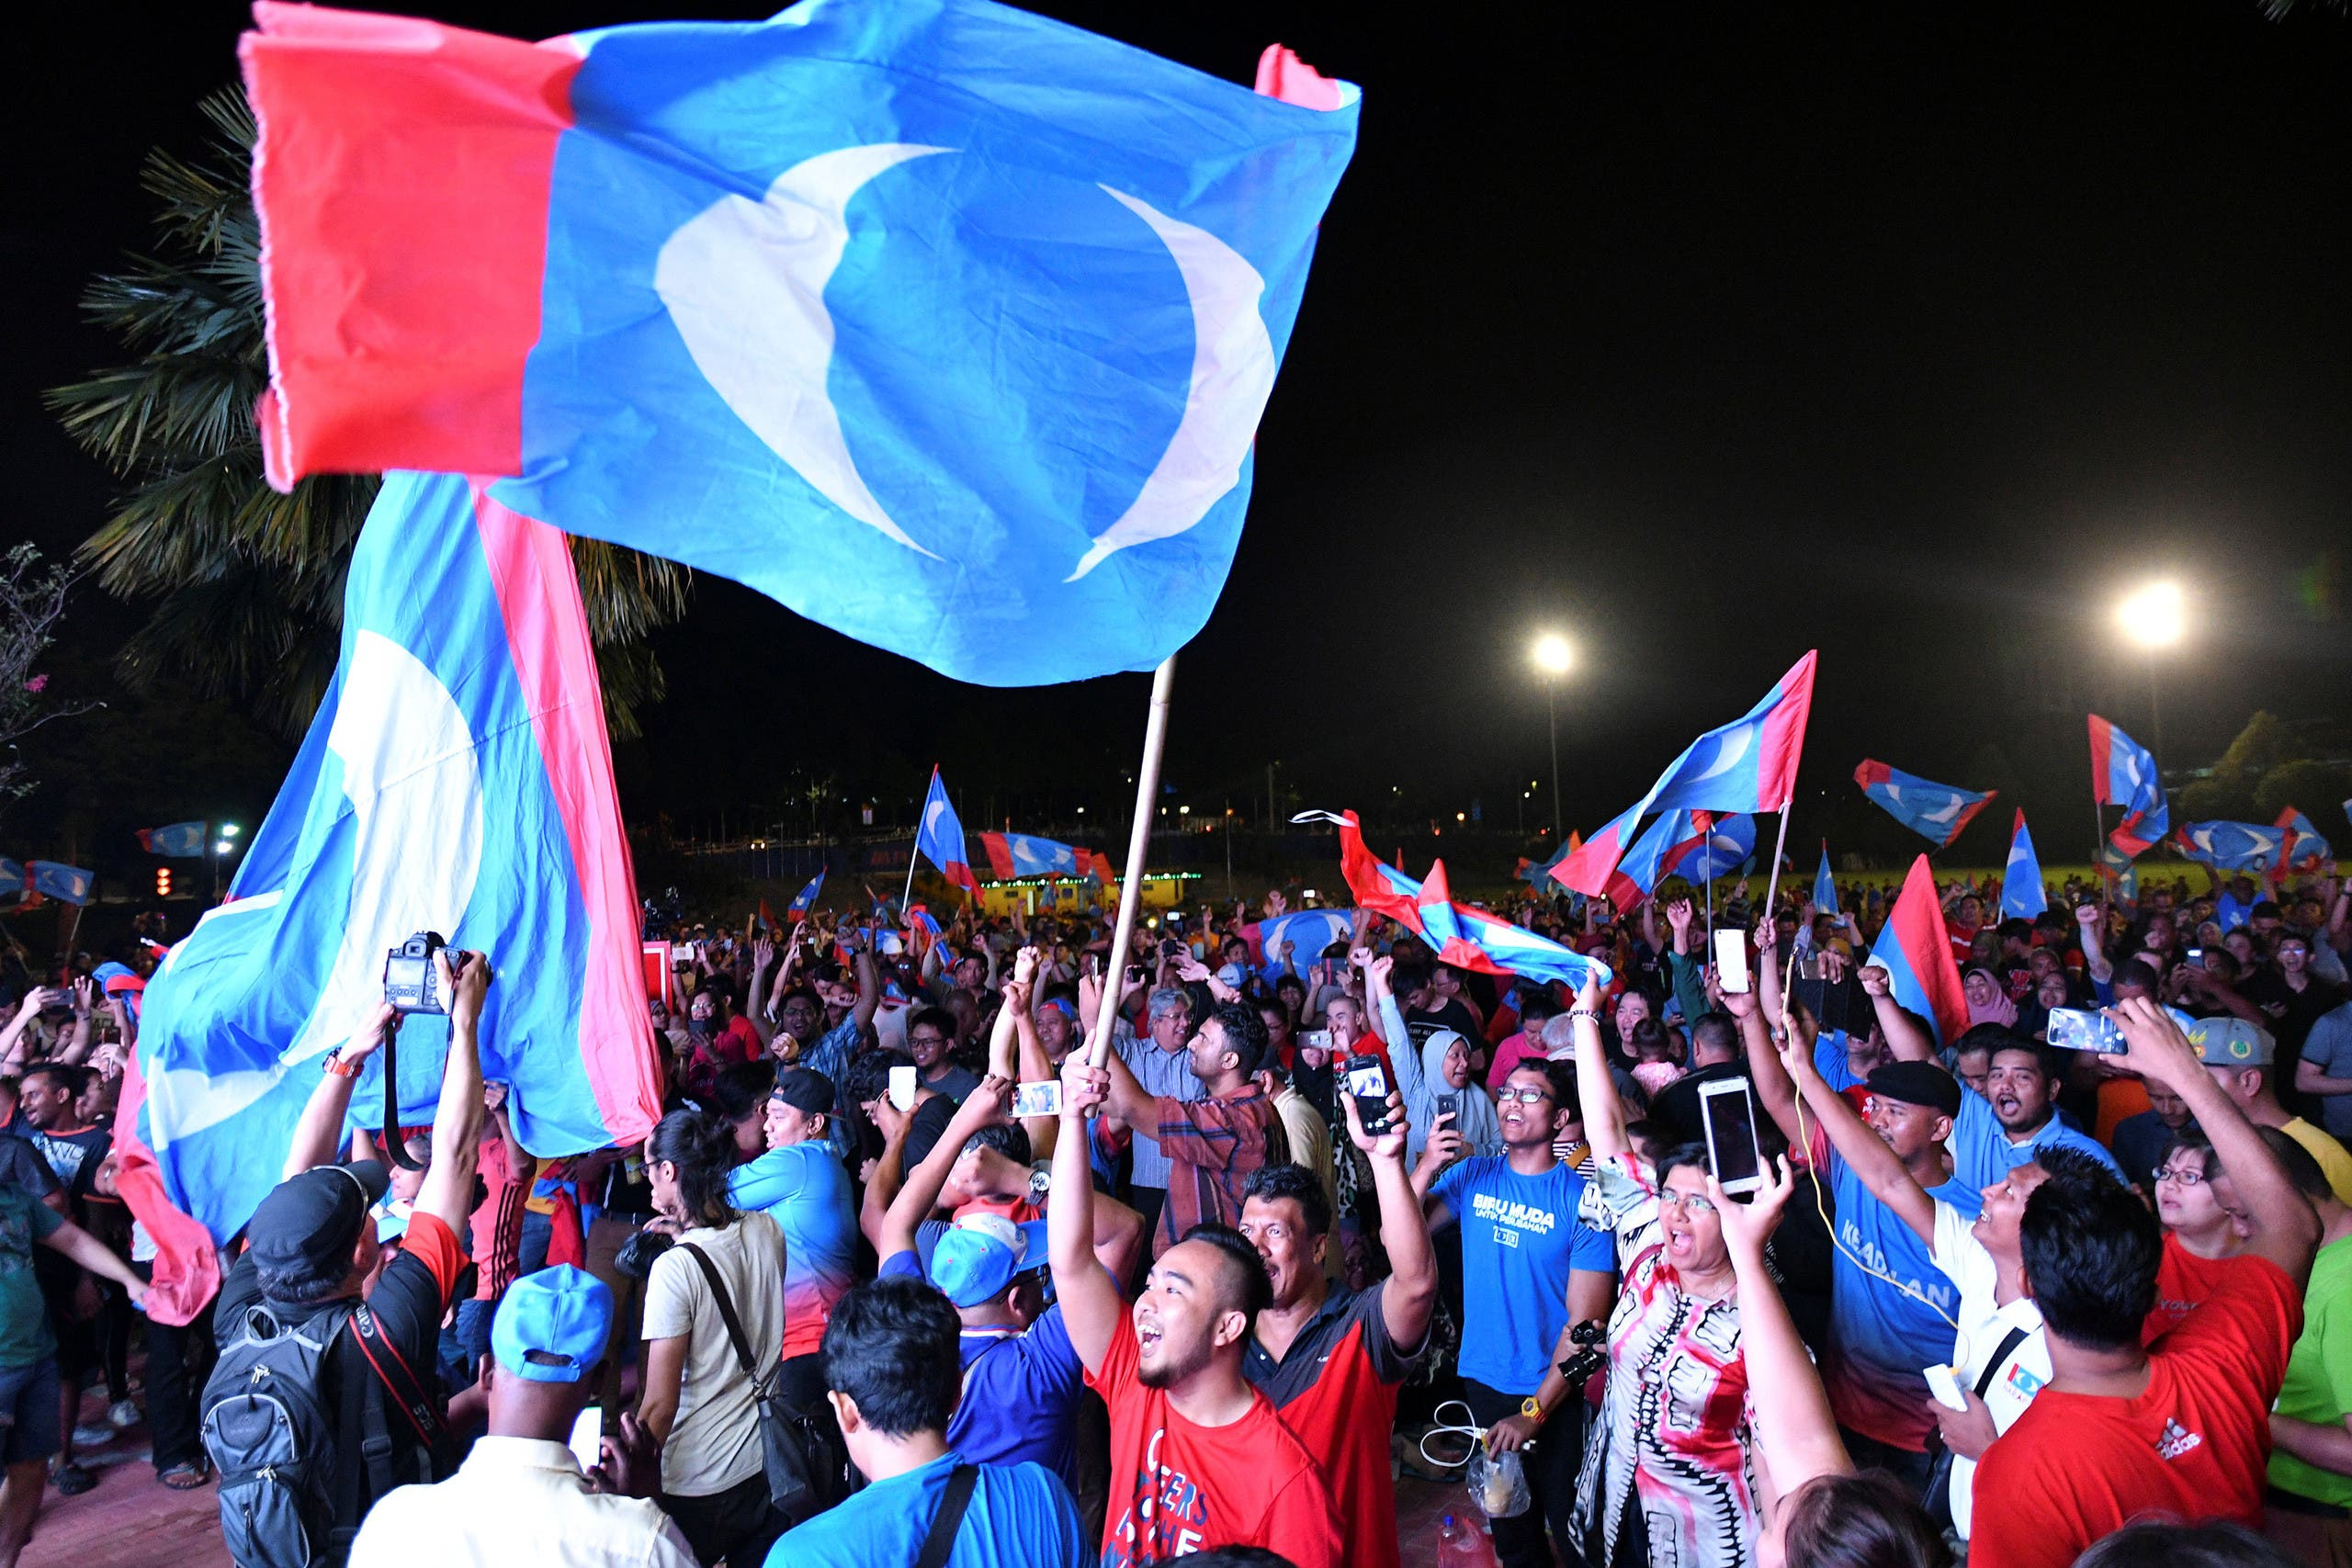 Supporters of Mahathir Mohamad celebrate the victory outside the hotel where he held news conference, in Petaling Jaya, Malaysia, on May 10, 2018. (Reuters)